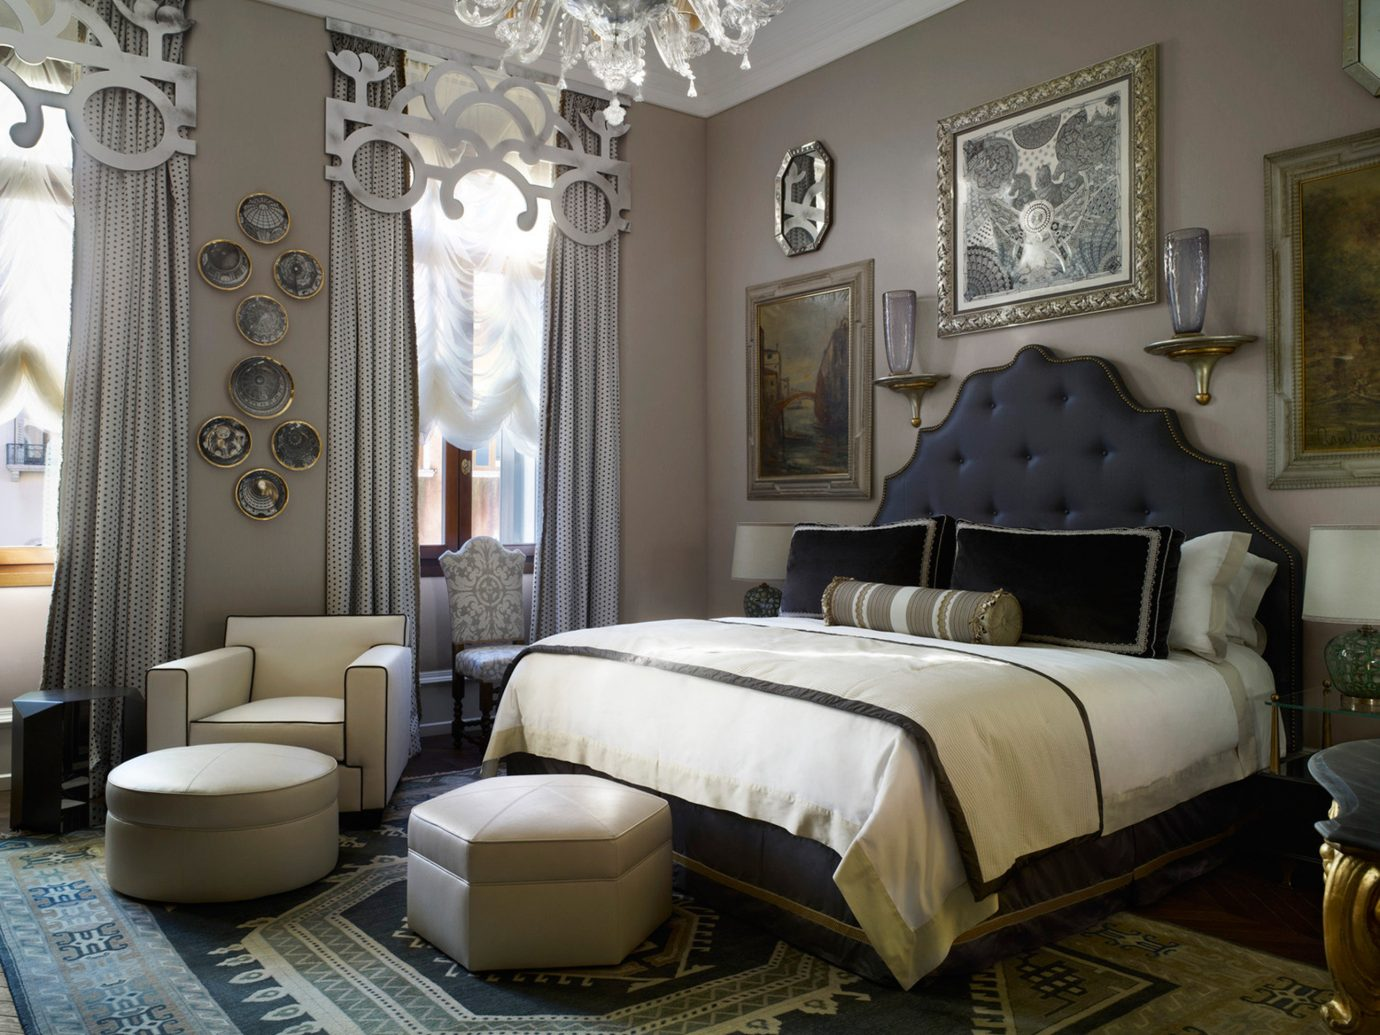 Bedroom City Elegant Historic Hotels Italy Luxury Luxury Travel Venice sofa indoor room floor living room property estate interior design home hotel furniture mansion Suite real estate